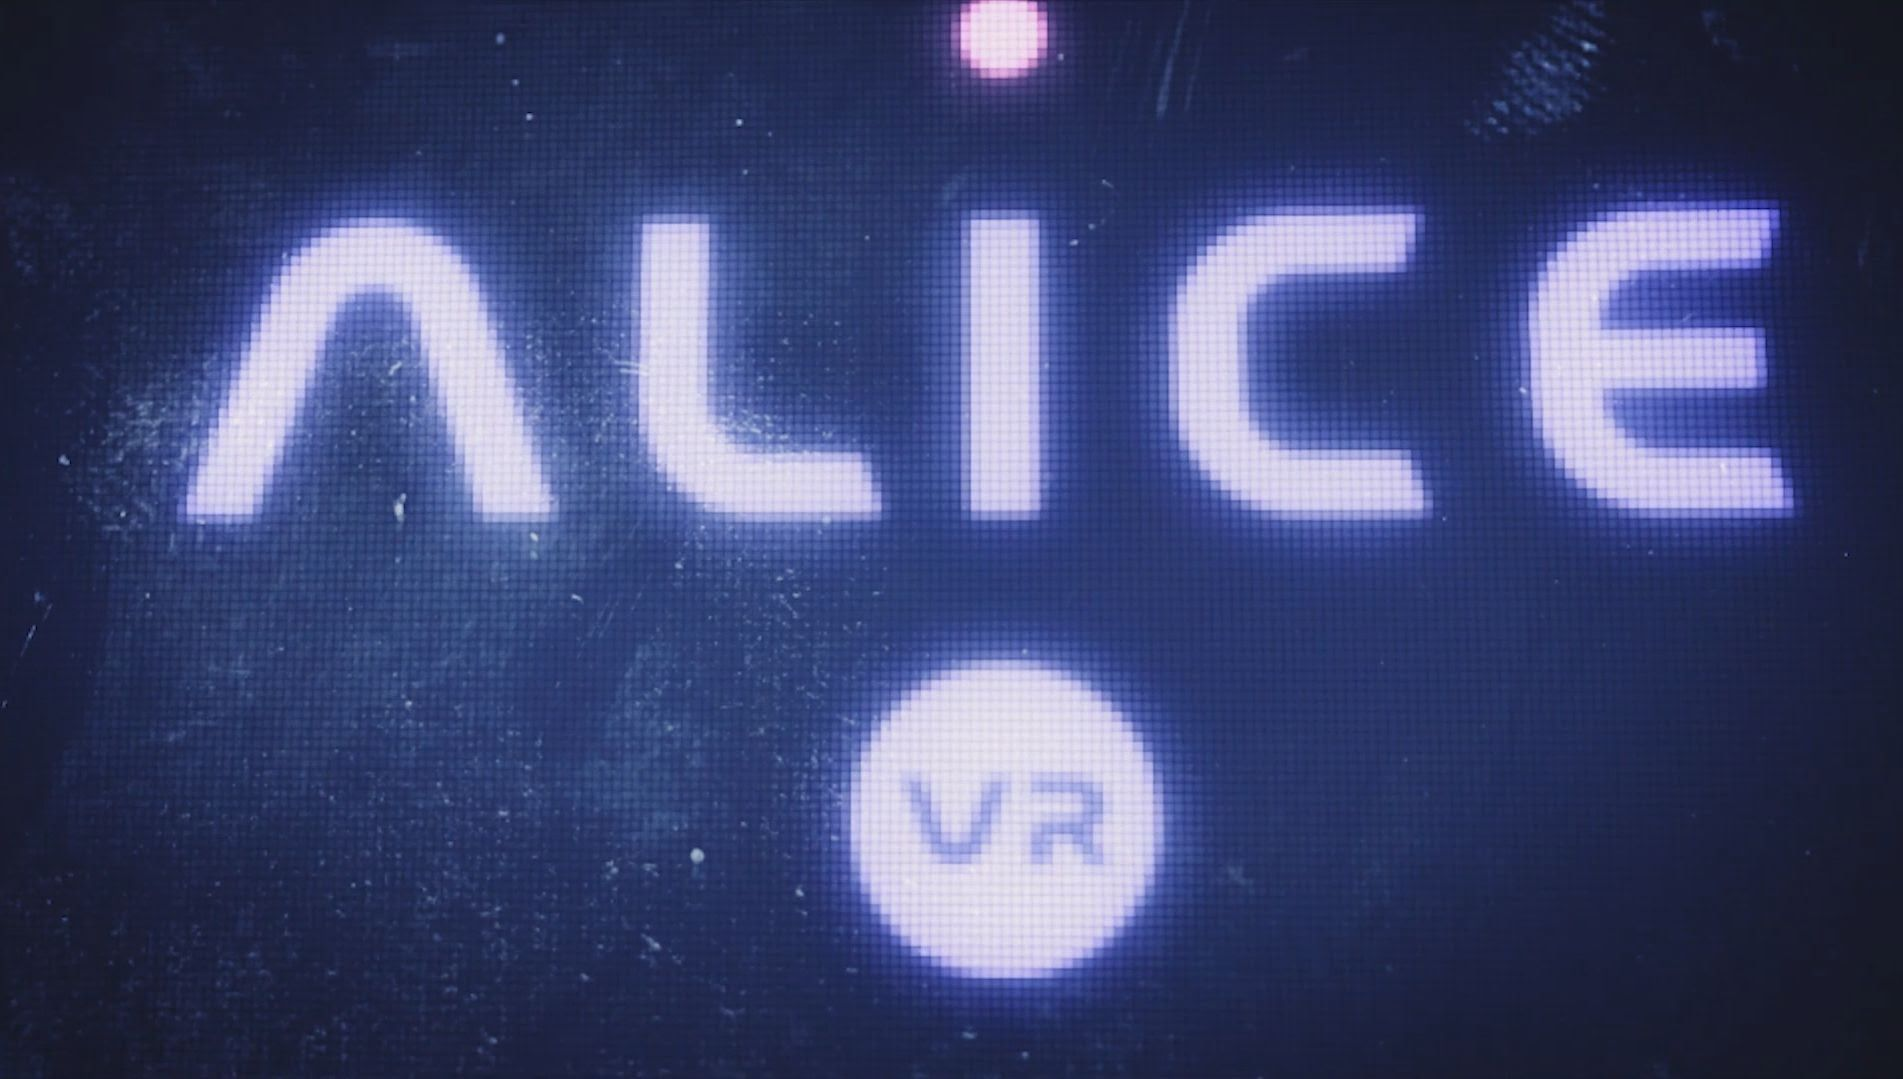 ALICE VR What will you discover? [STORY TRAILER] gaming